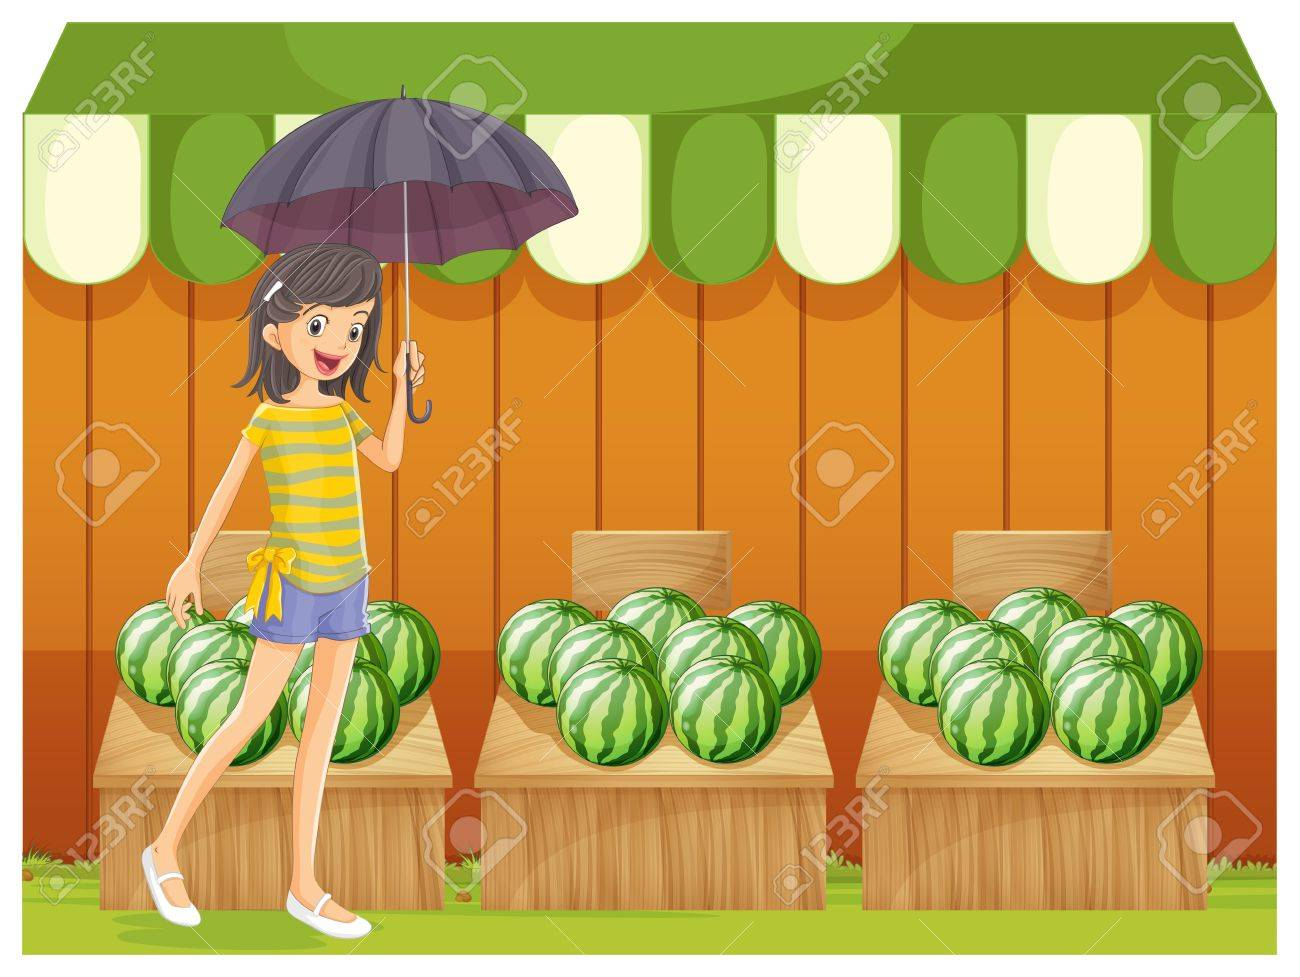 Illustration of a girl holding an umbrella walking in front of the watermelon shop on a white background Stock Vector - 20729563